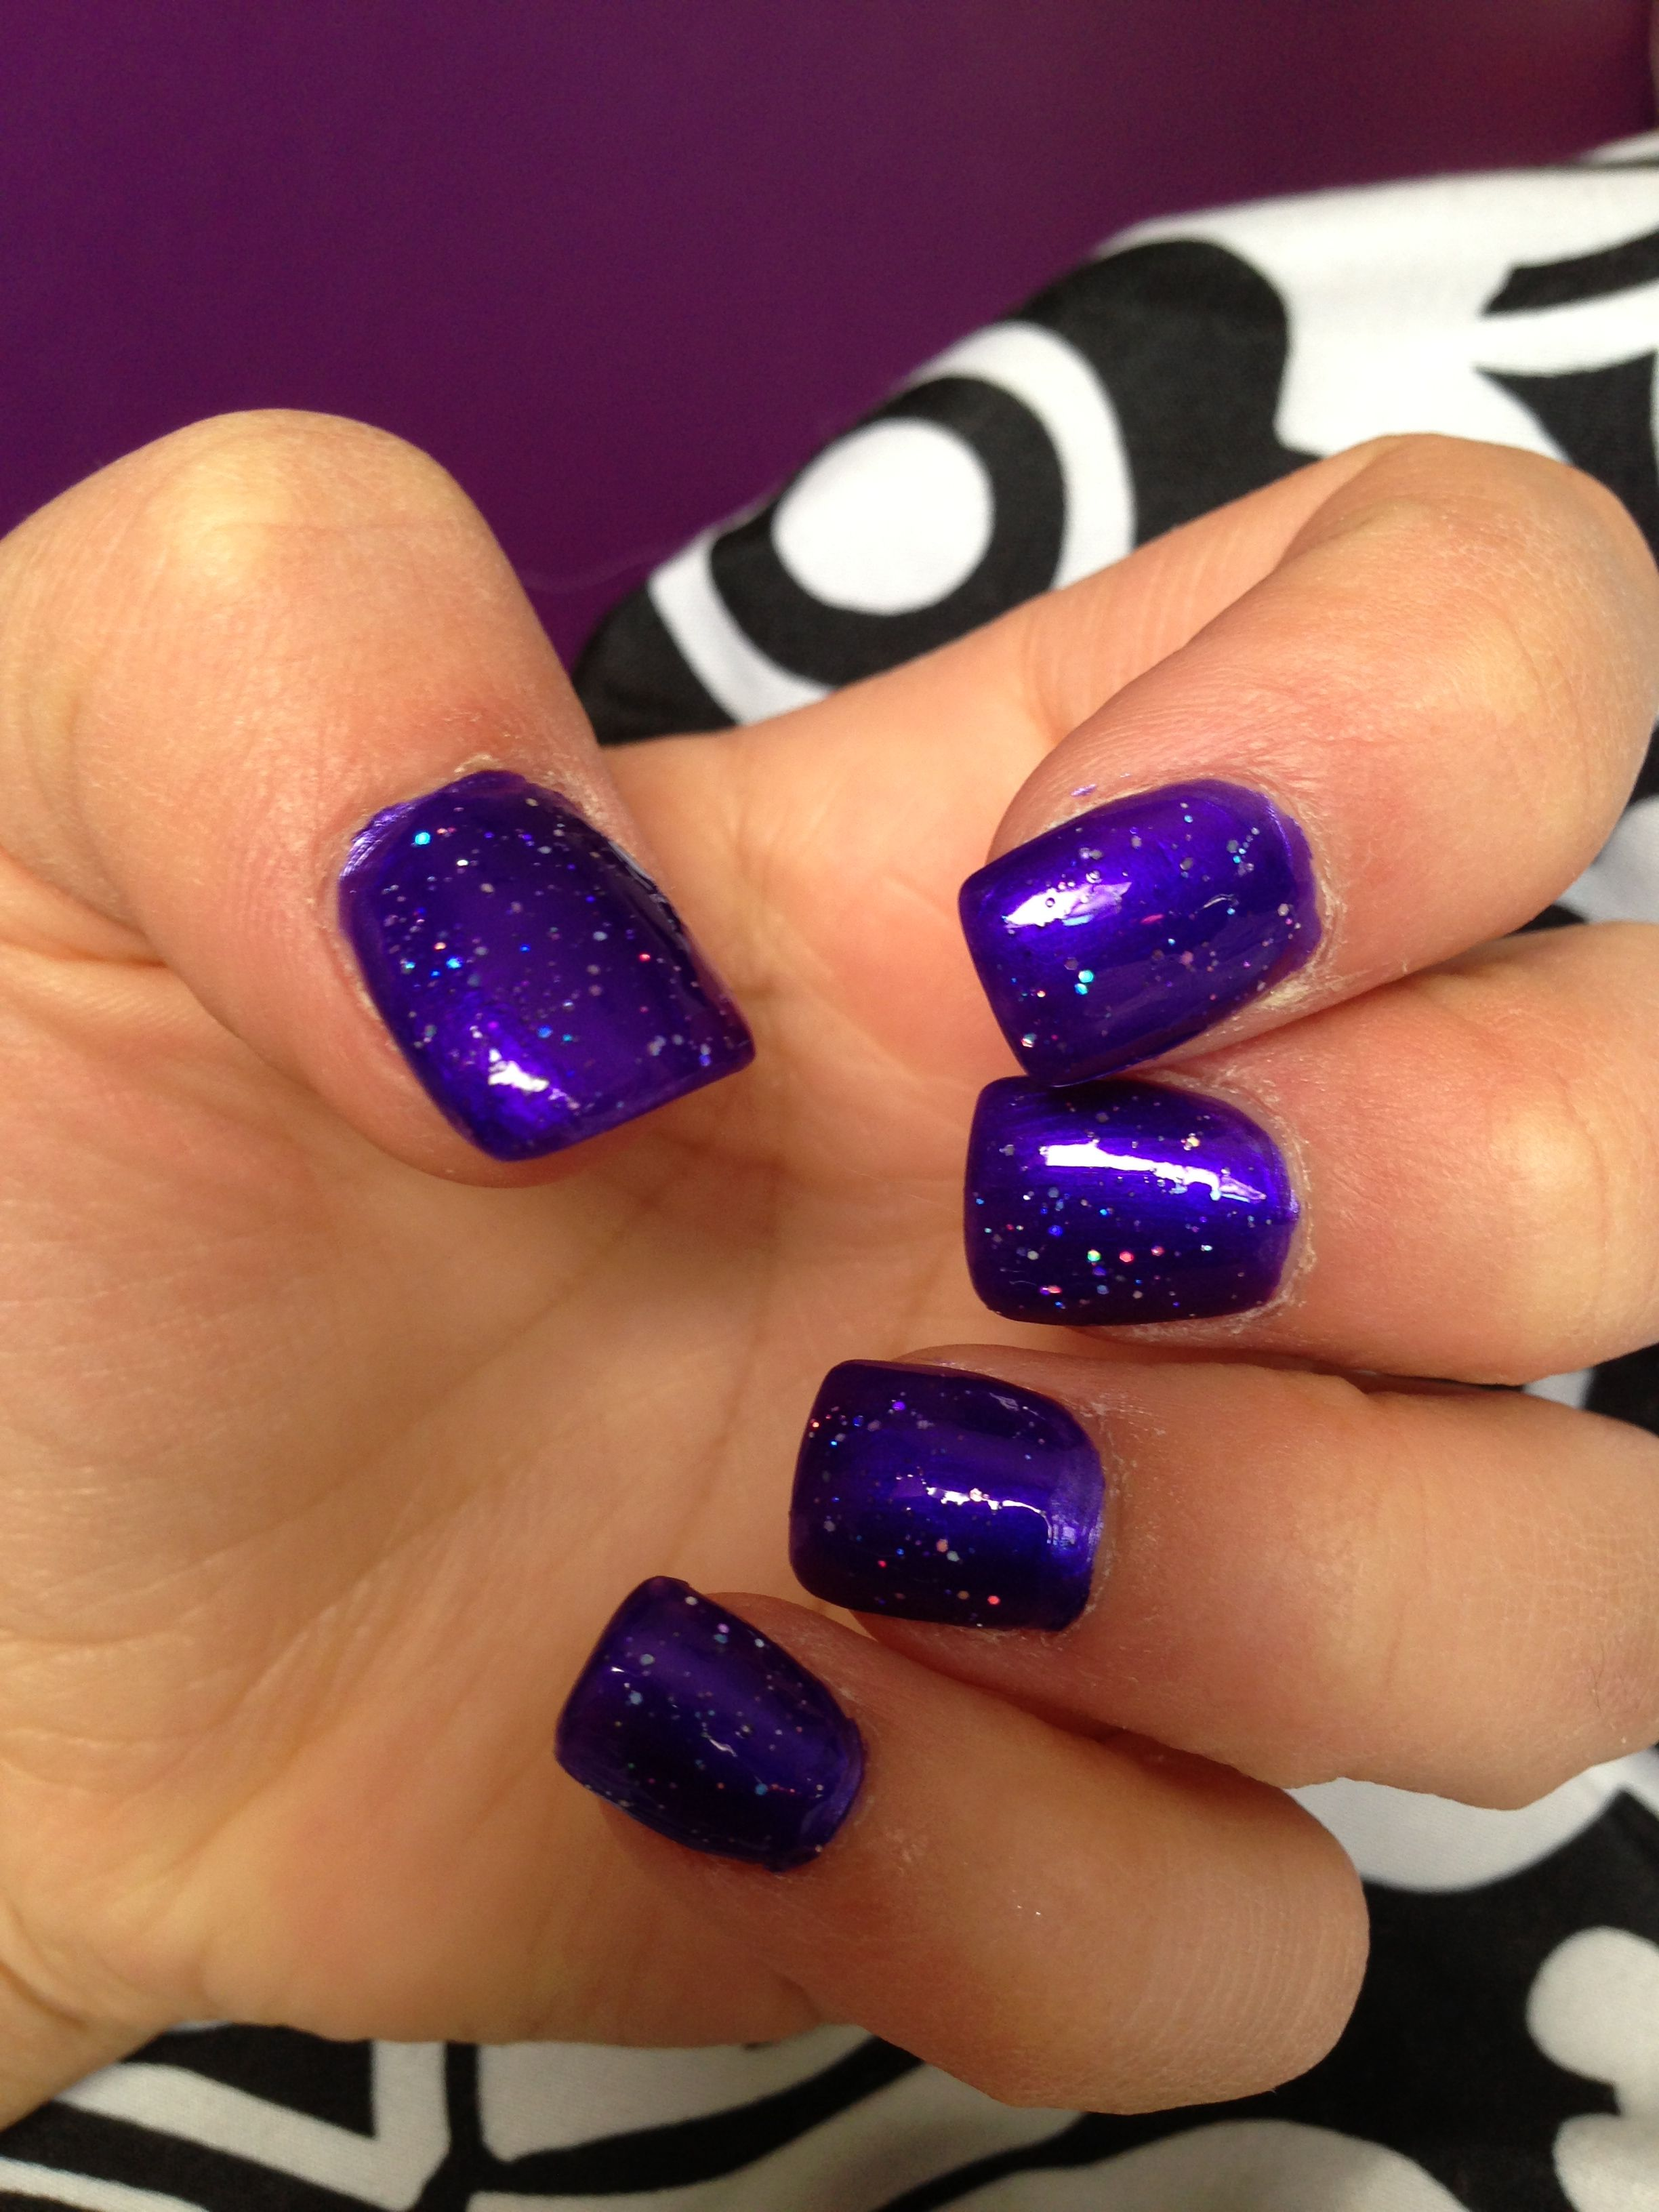 Purple Acrylic Nails Pictures to Pin on Pinterest - PinsDaddy